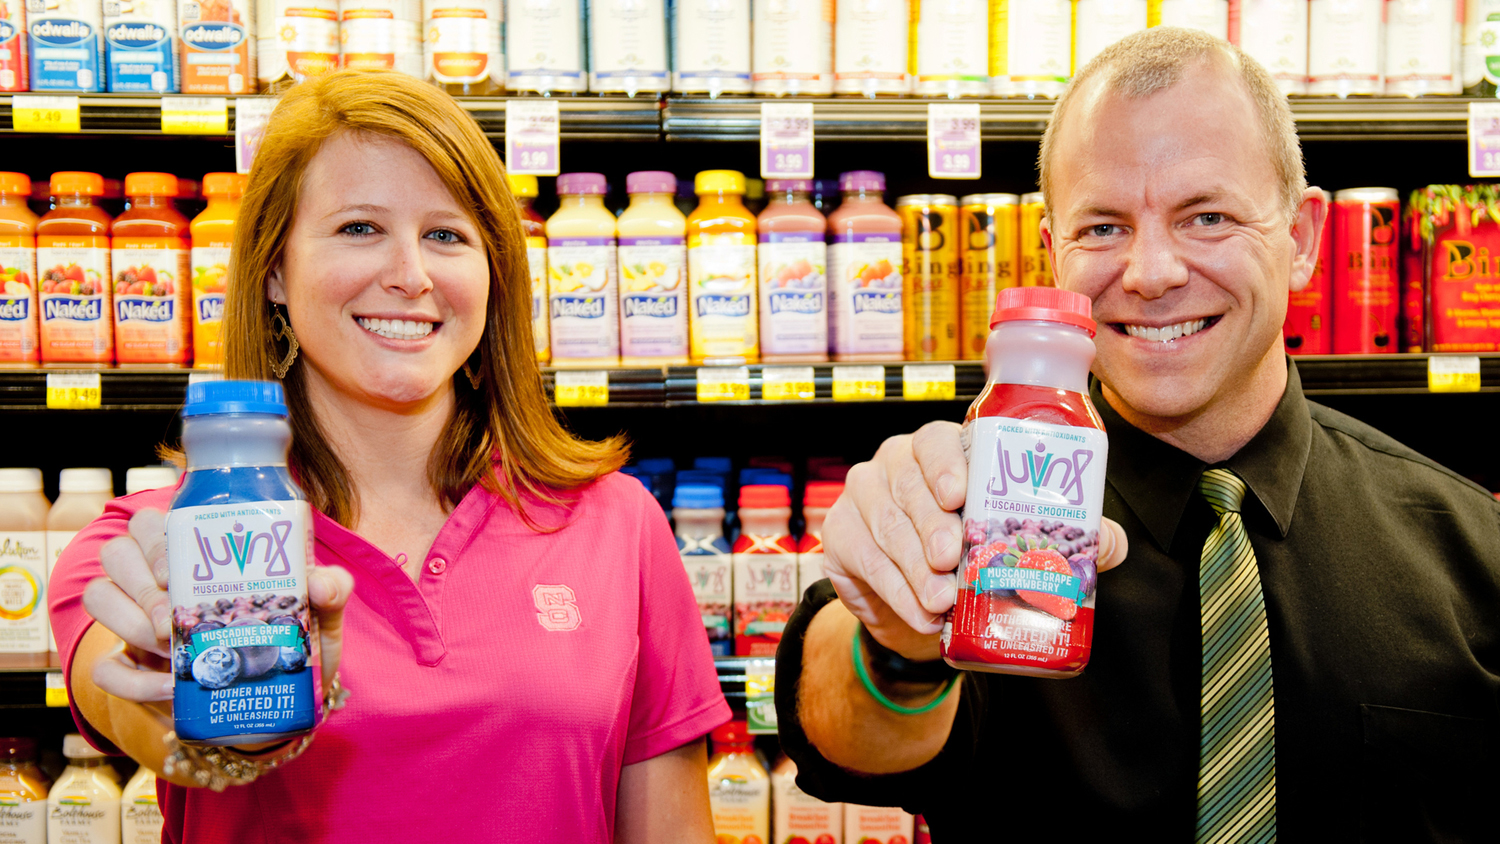 A student and a faculty member showing off a juice product in a grocery store based off of NCState research.